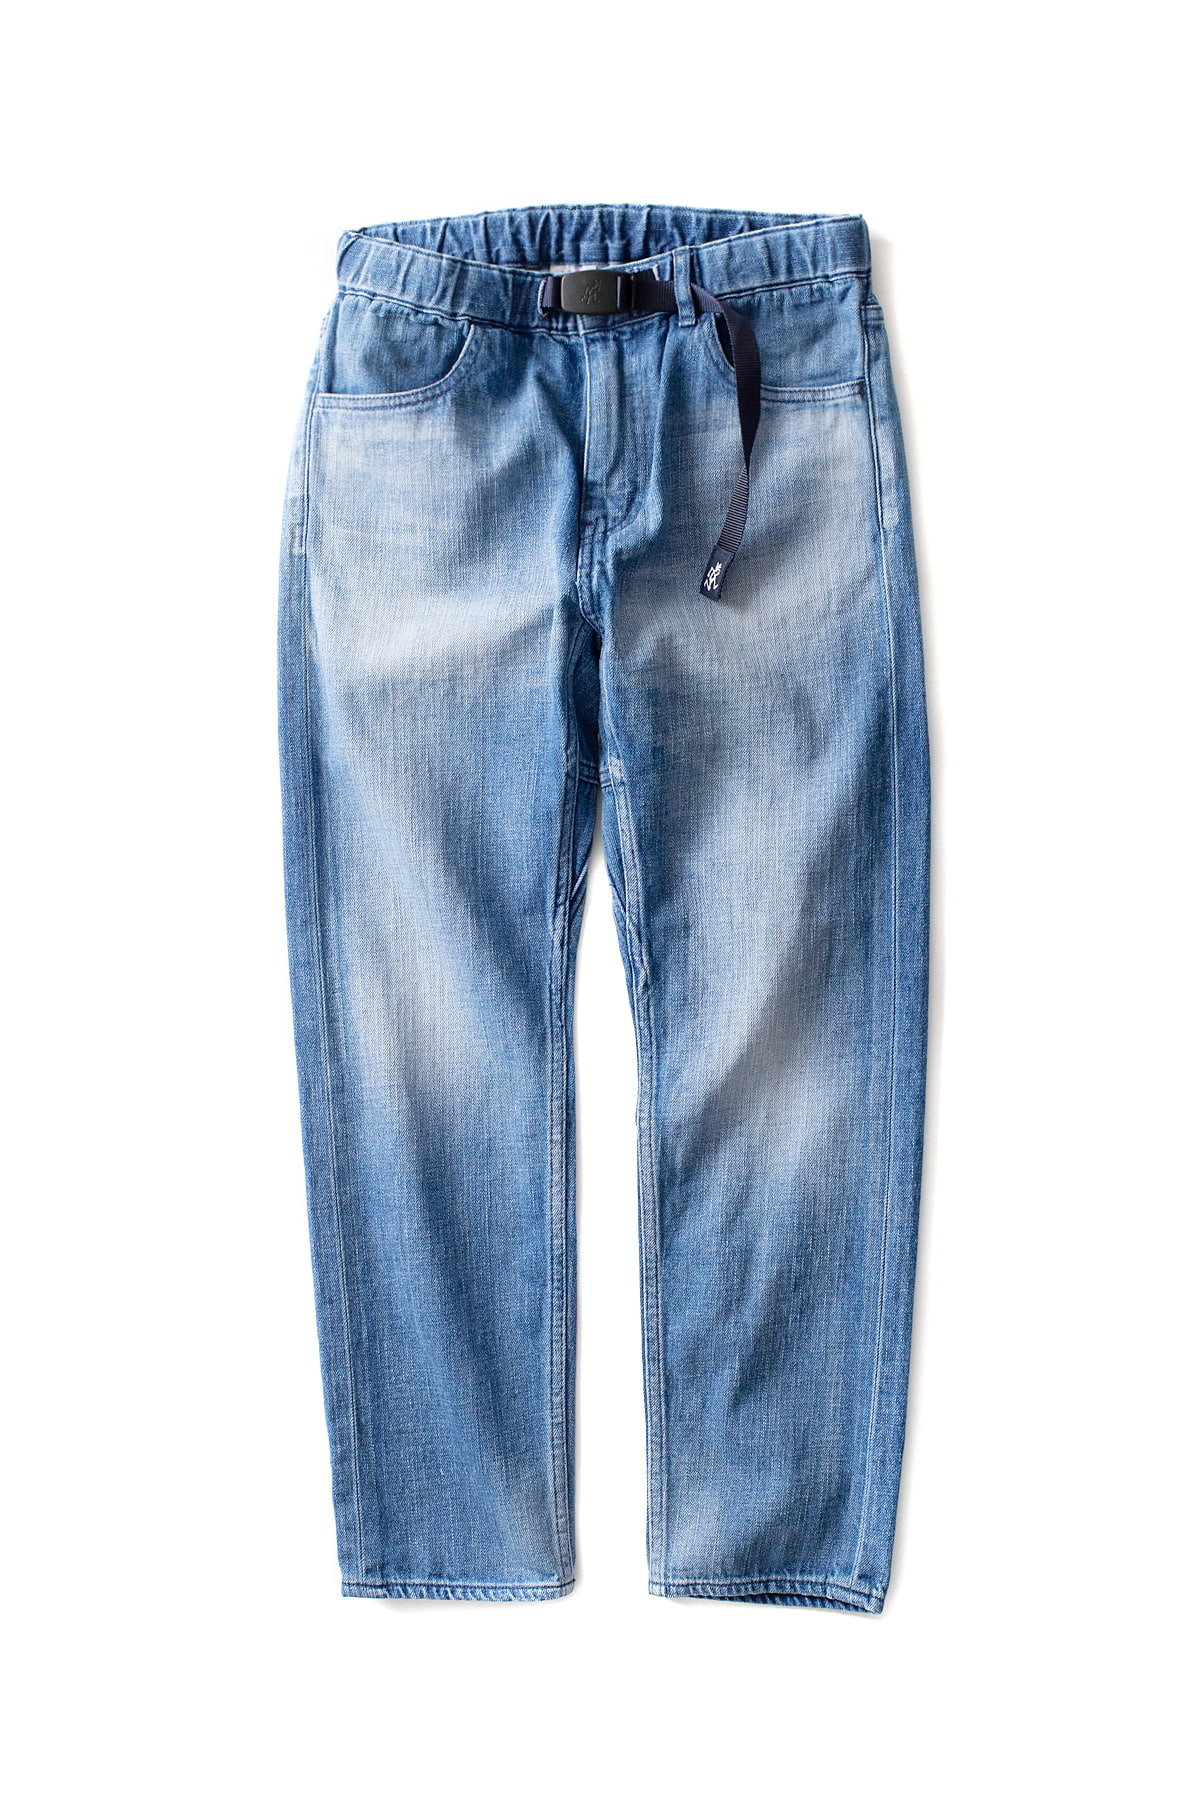 Gramicci x Ordinary fits : Ankle Denim Pants (Used)